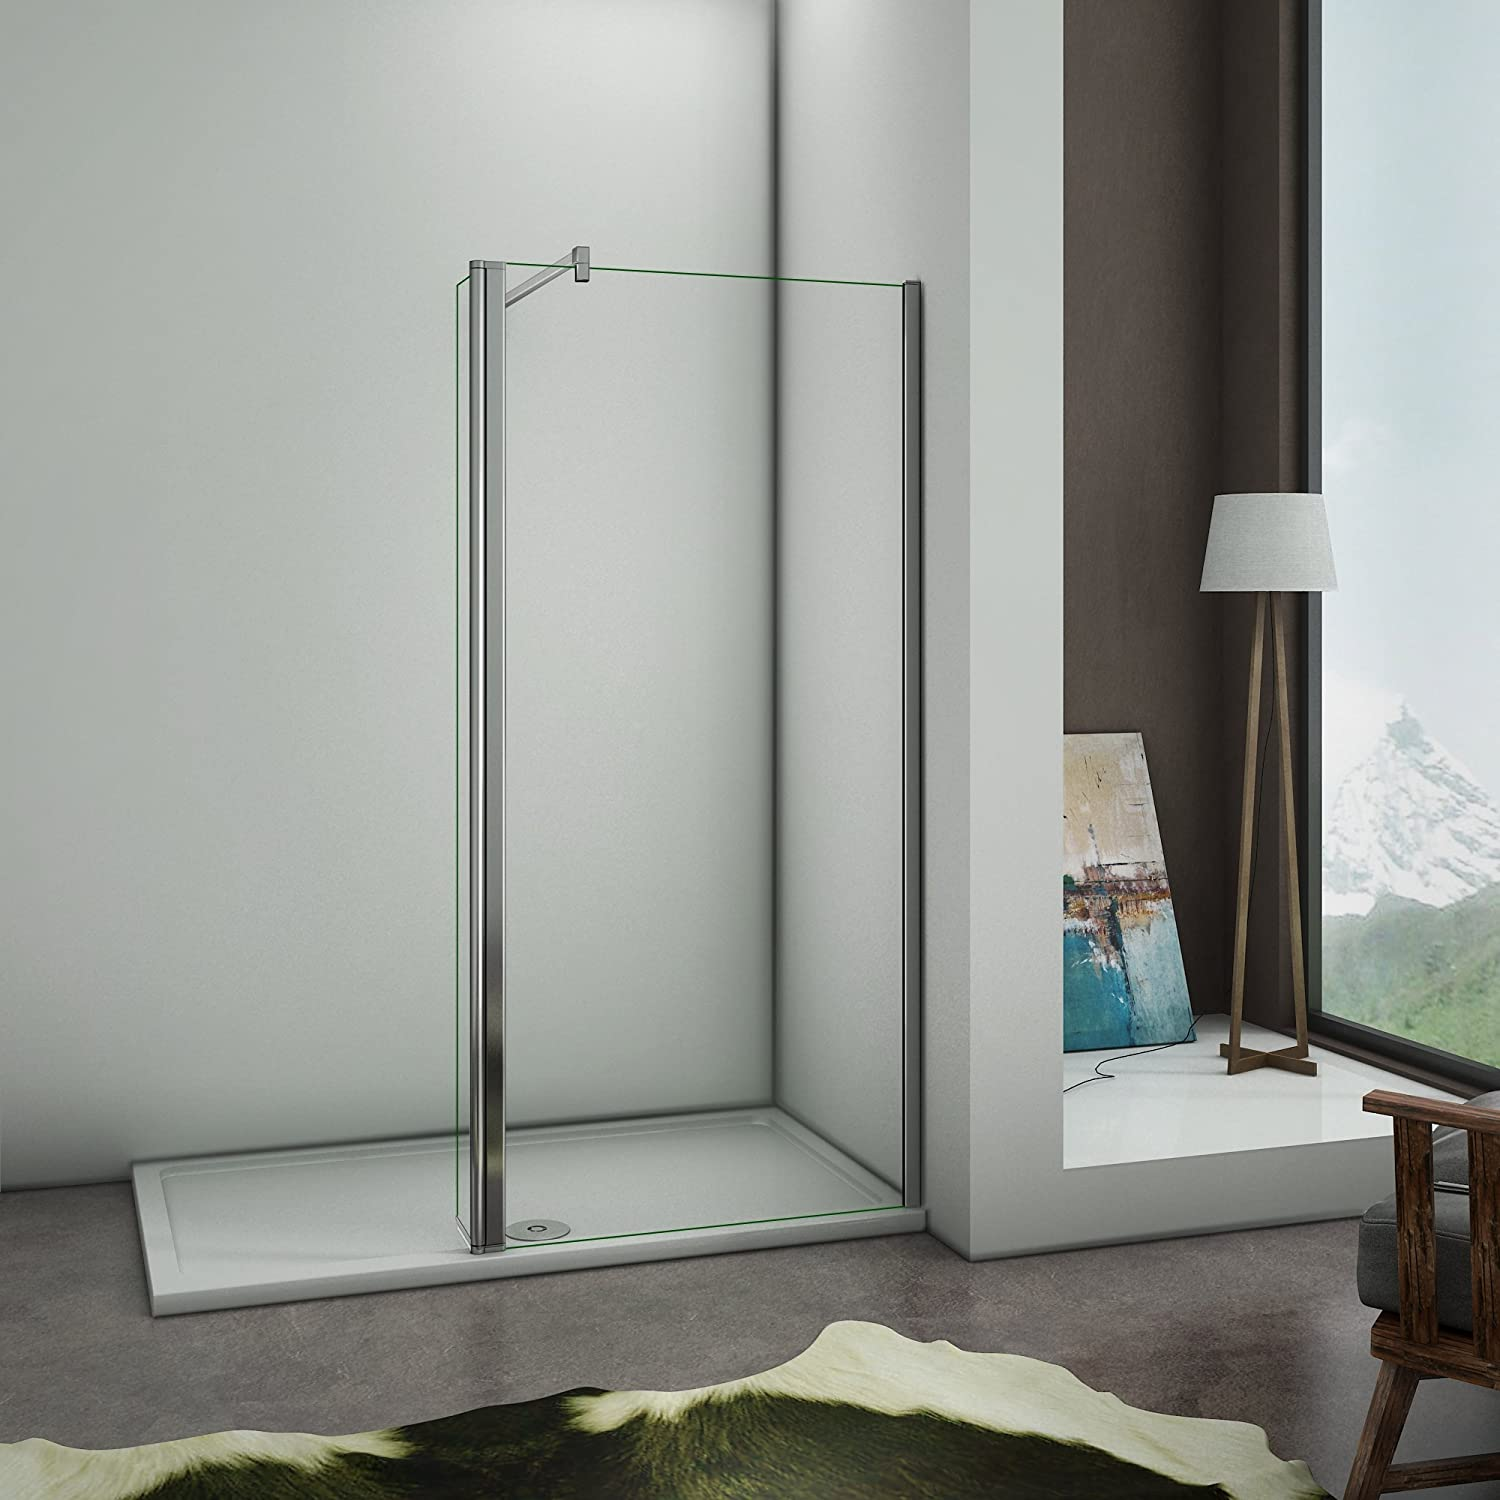 1000mm+300mm panel Perfect 900mm Walkin Wetroom Shower Screen Panel 8mm Easy Clean Glass Shower Enclosure with Support Bar